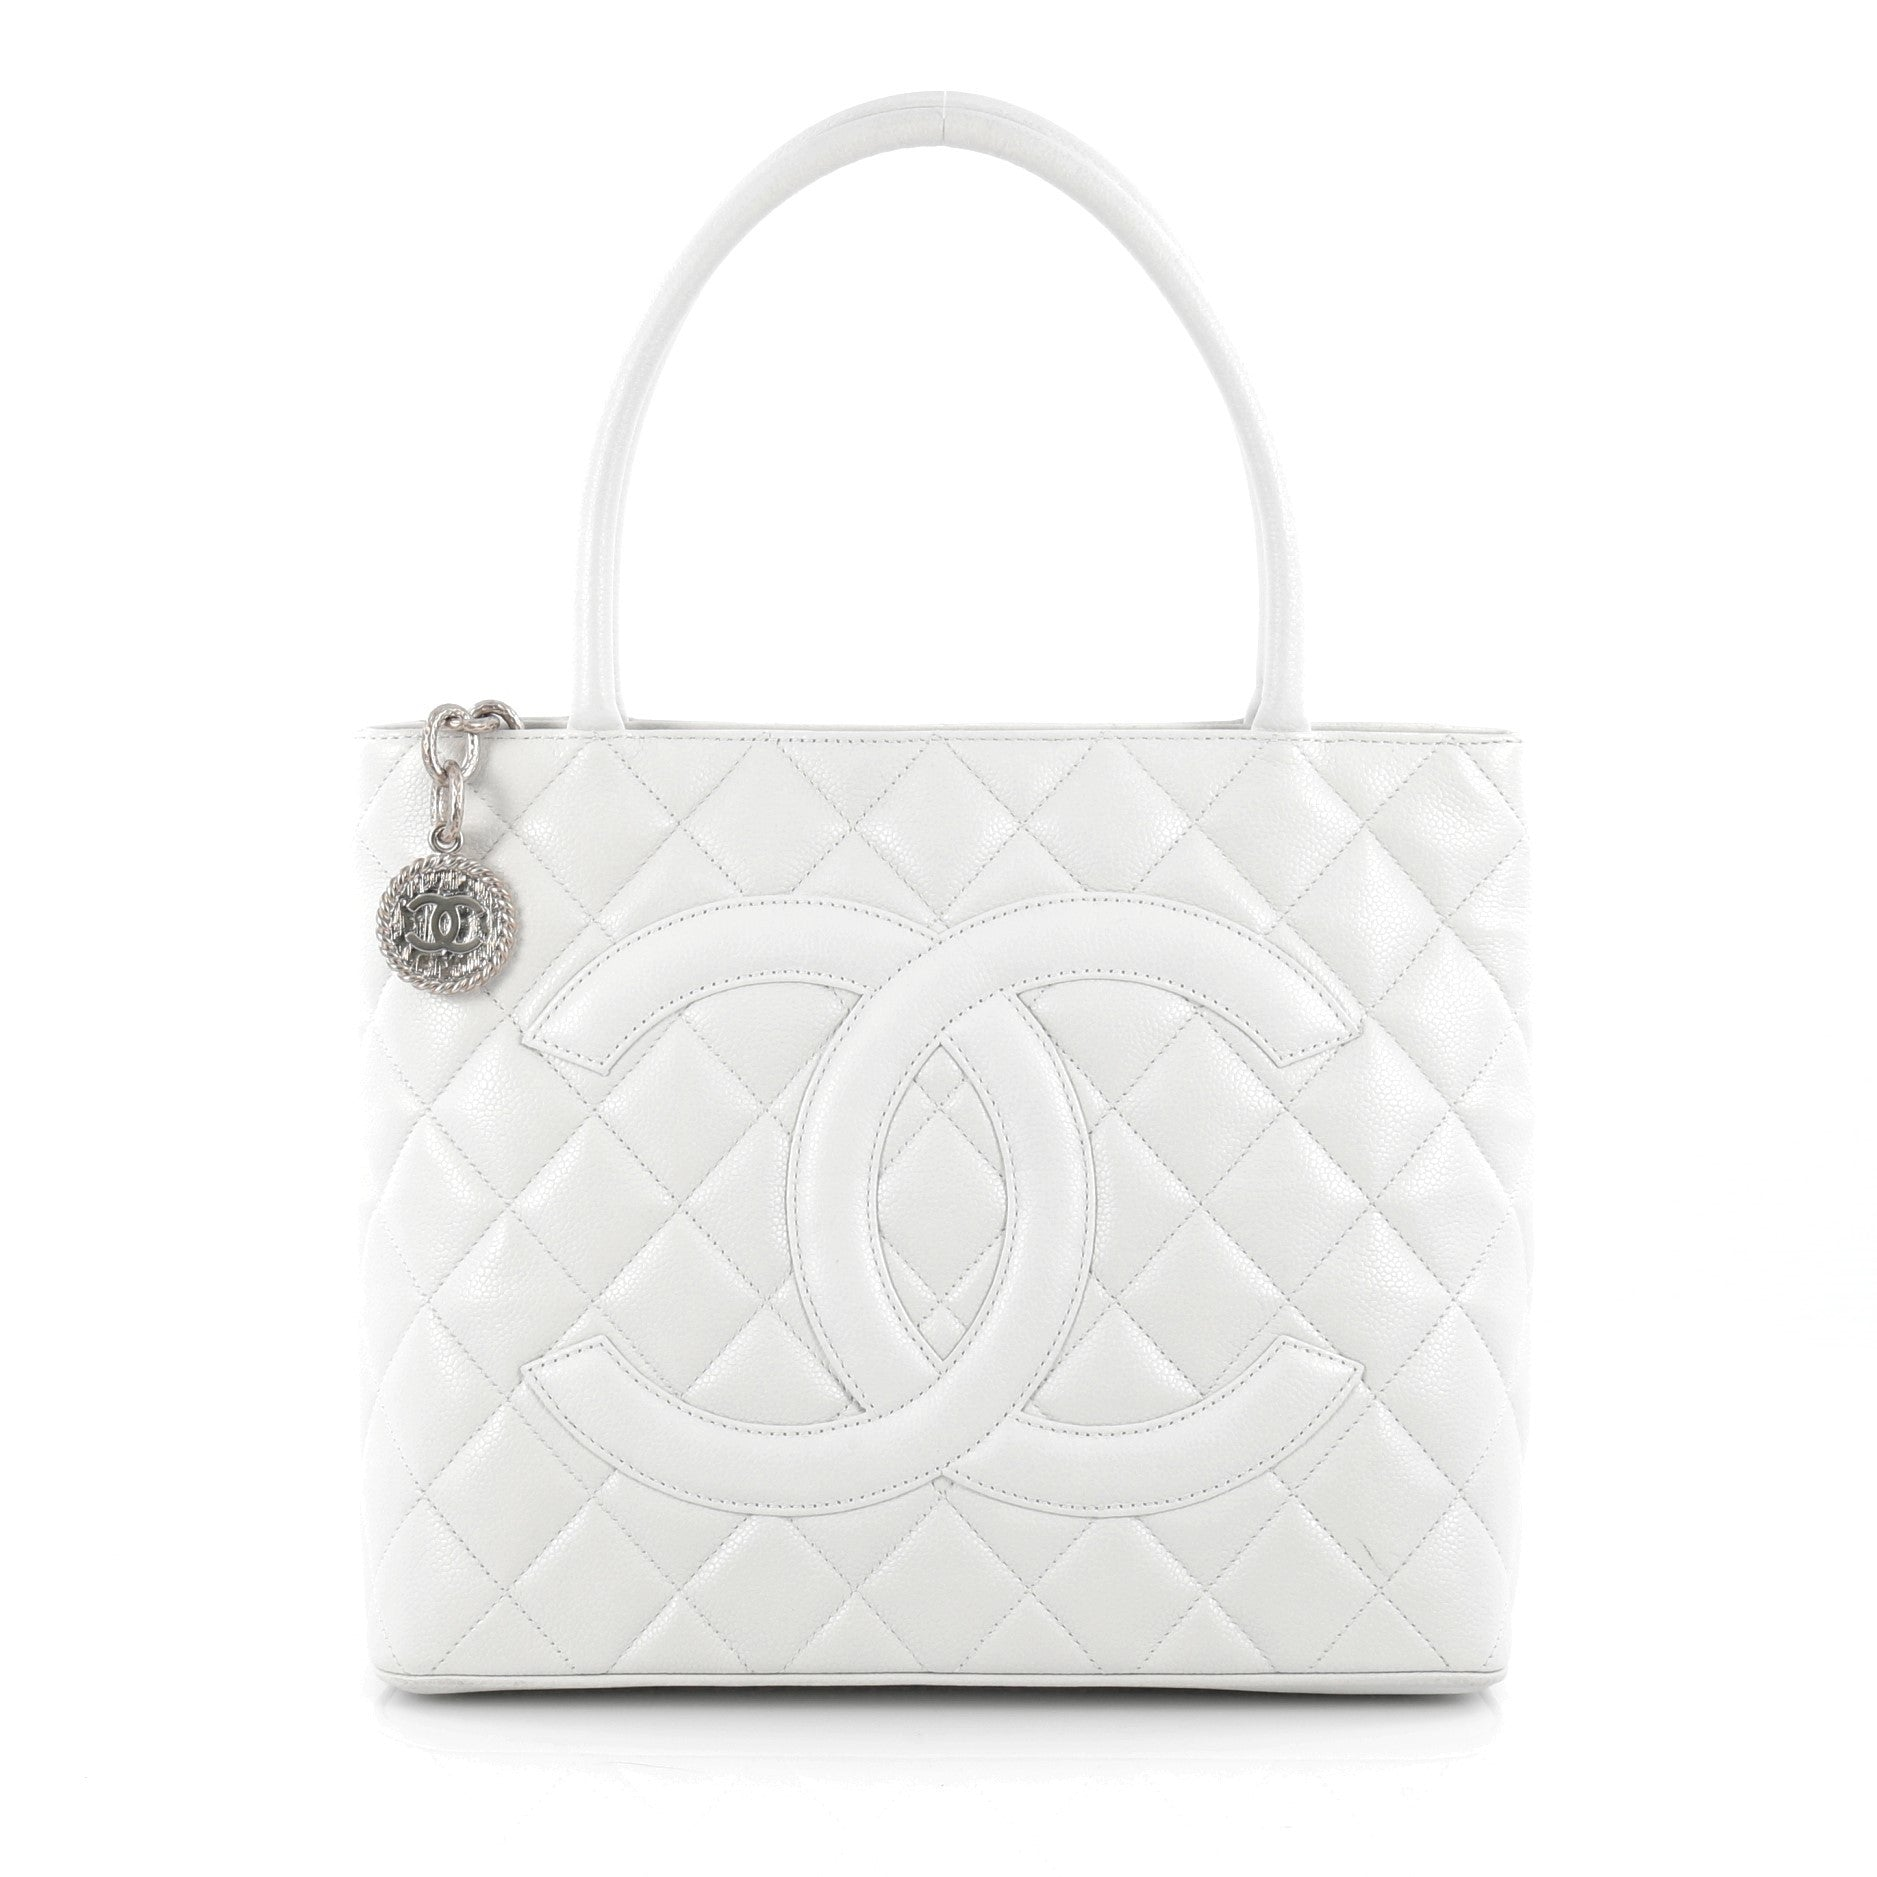 3cd11f8f0a73 16989-01_Chanel_Medallion_Tote_Quilted_Caviar_2D_0003.jpg?v=1487720012